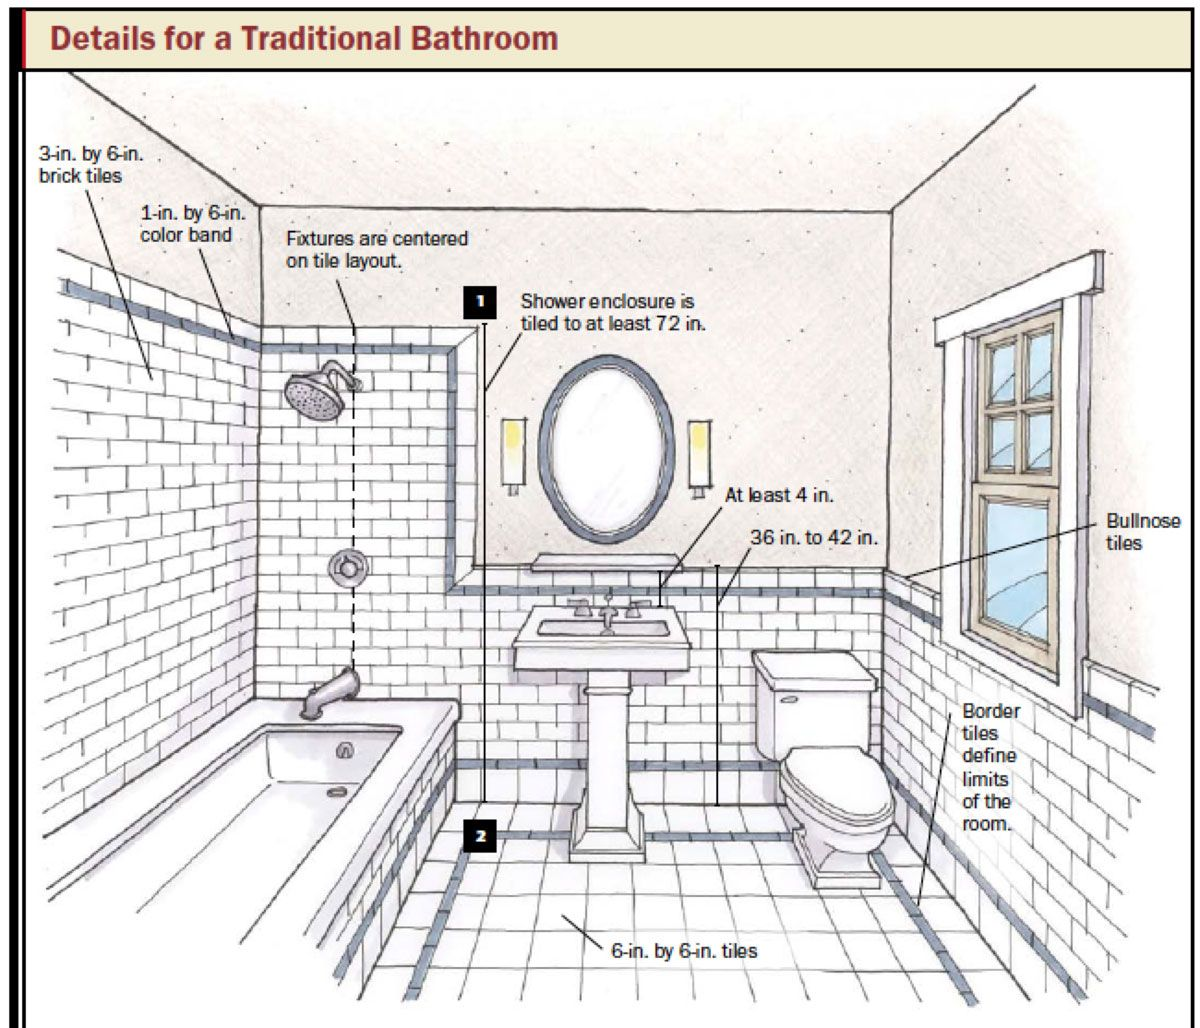 Best Bathroom Layout Bathroom Design Photos Bathroom Floor Plans Room Tiles Design Bathroom Layout